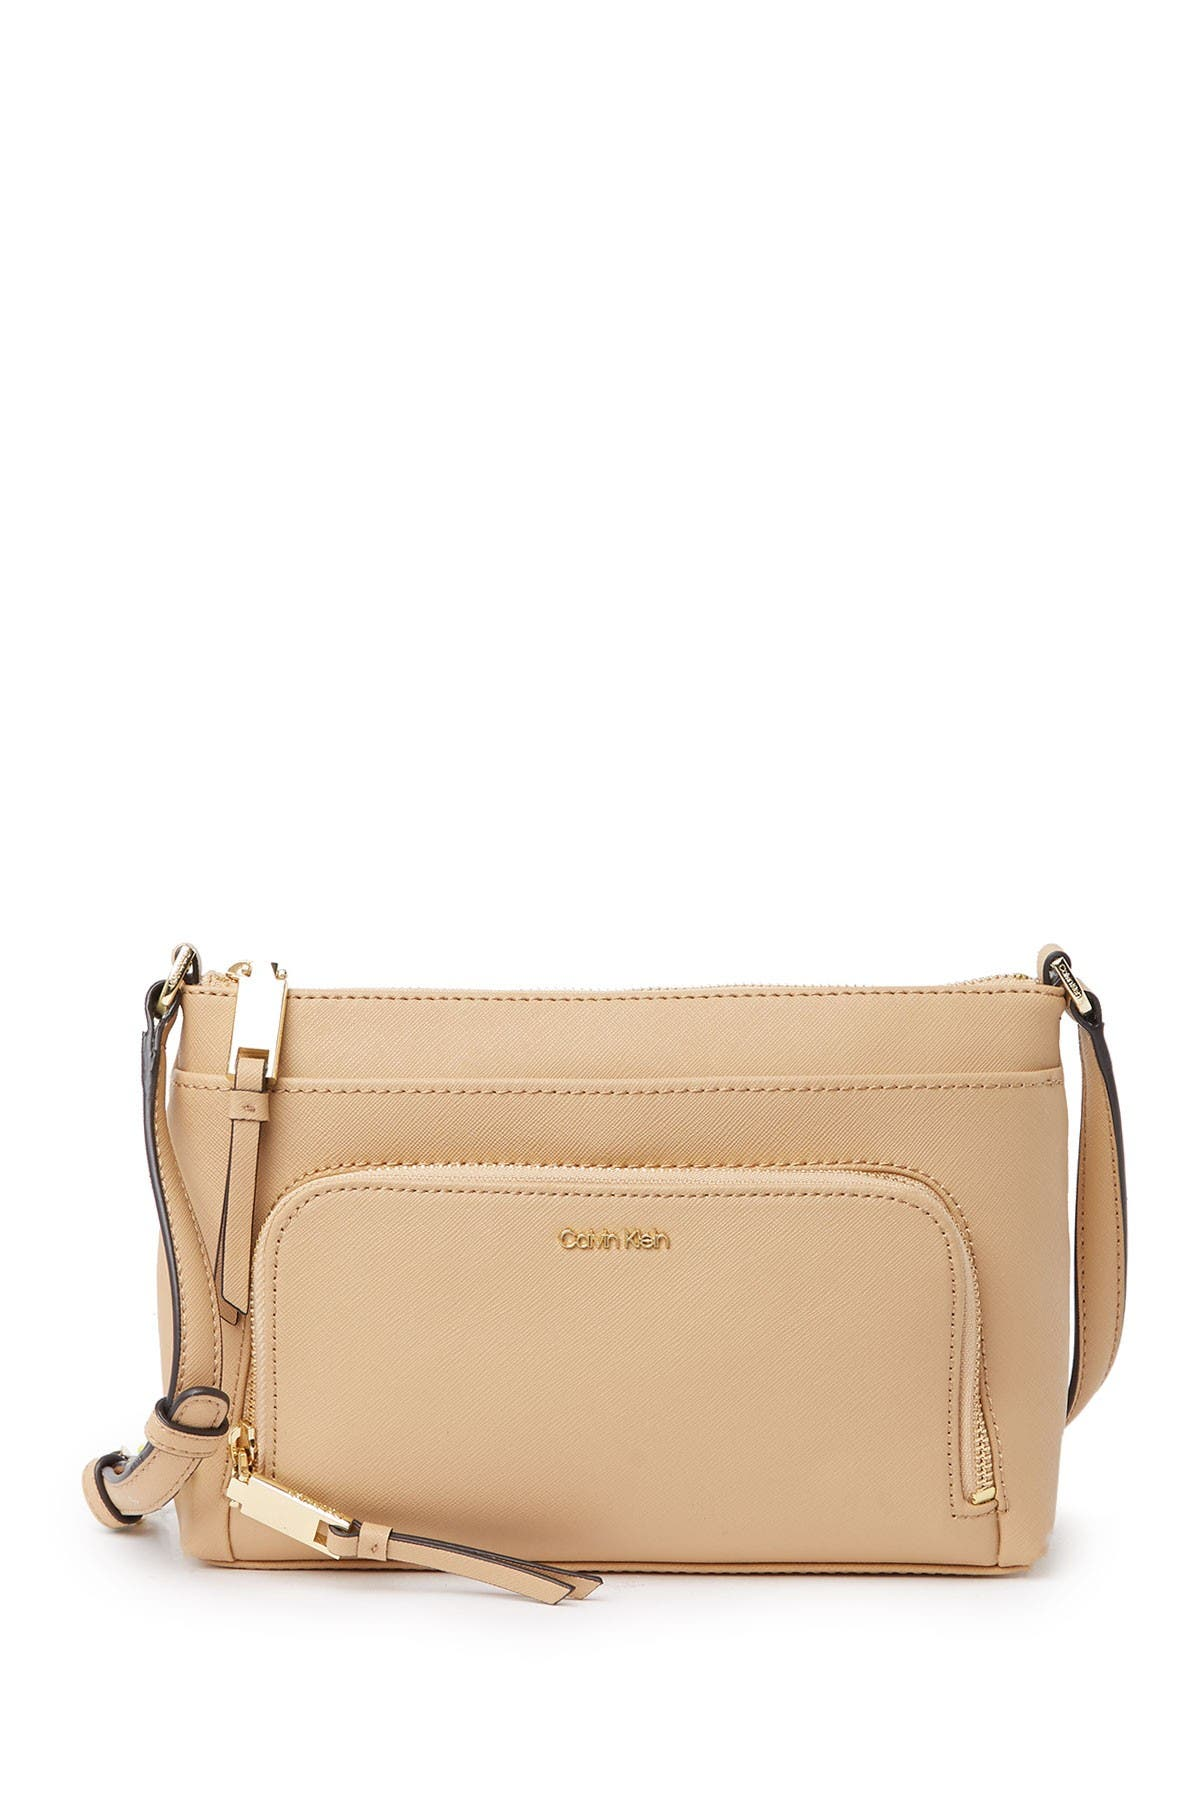 Image of Calvin Klein Lily Key Item Crossbody